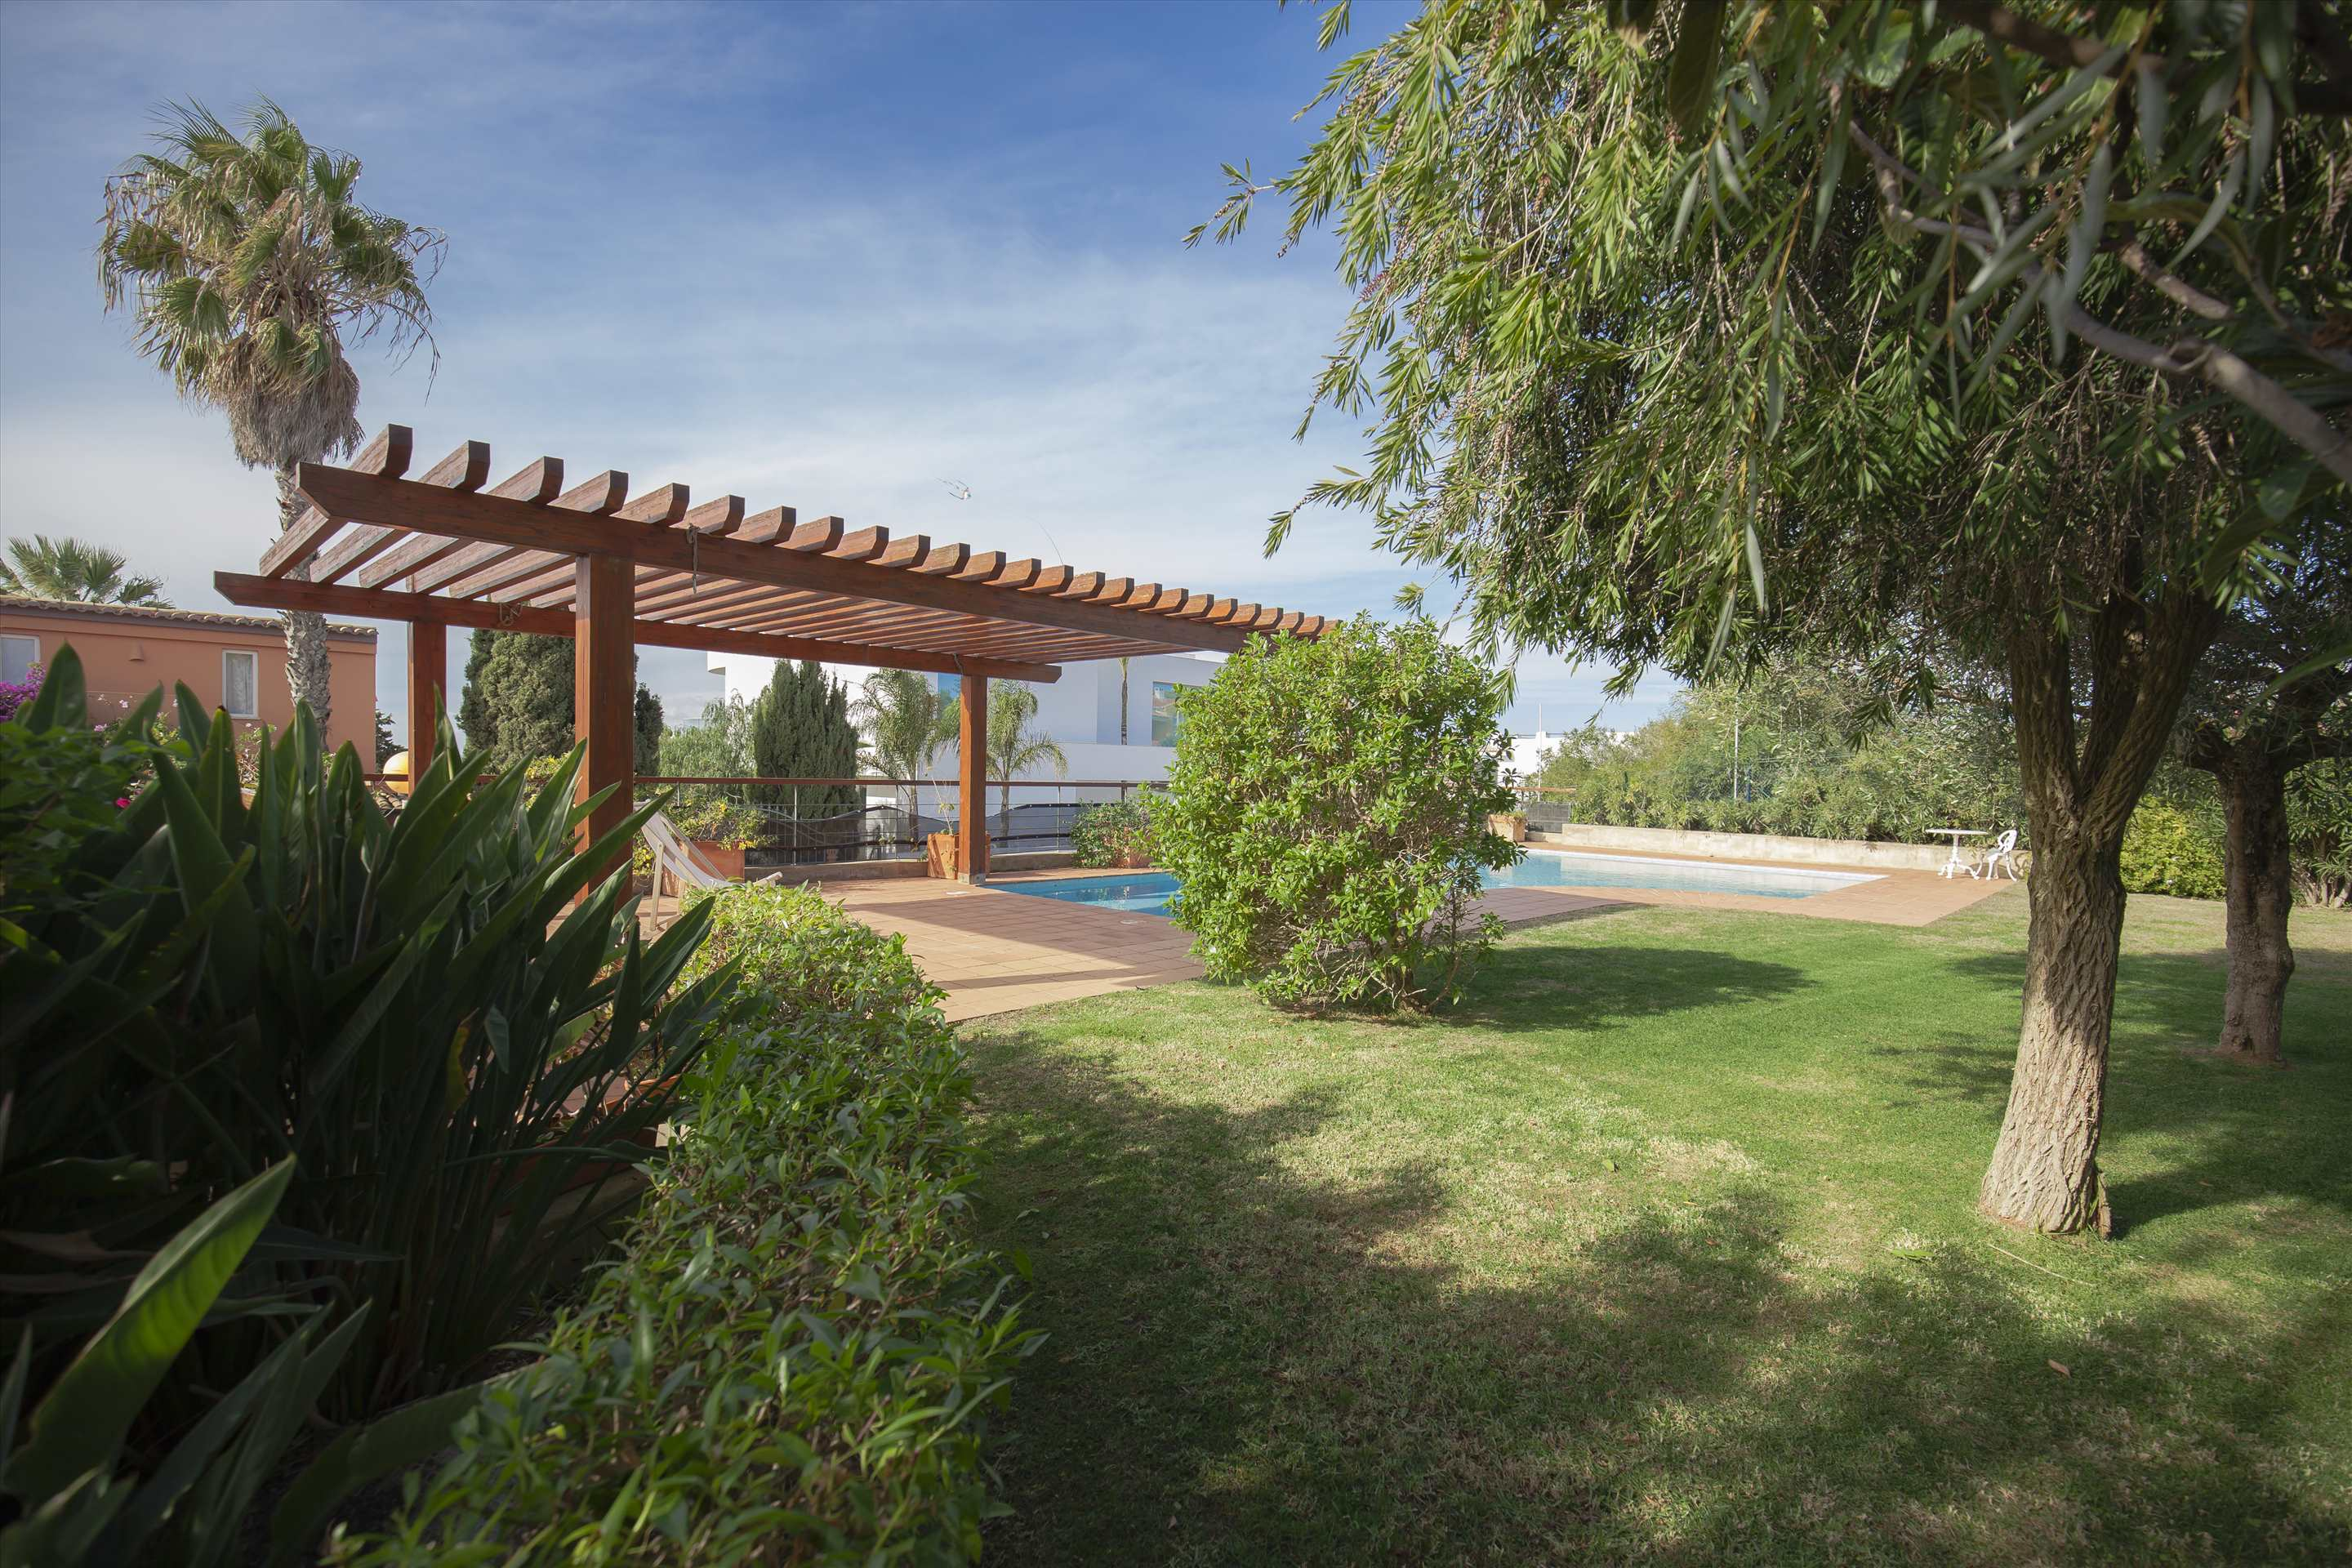 Casa Grande Mós , 8 bedroom villa in Lagos and Praia da Luz, Algarve Photo #12